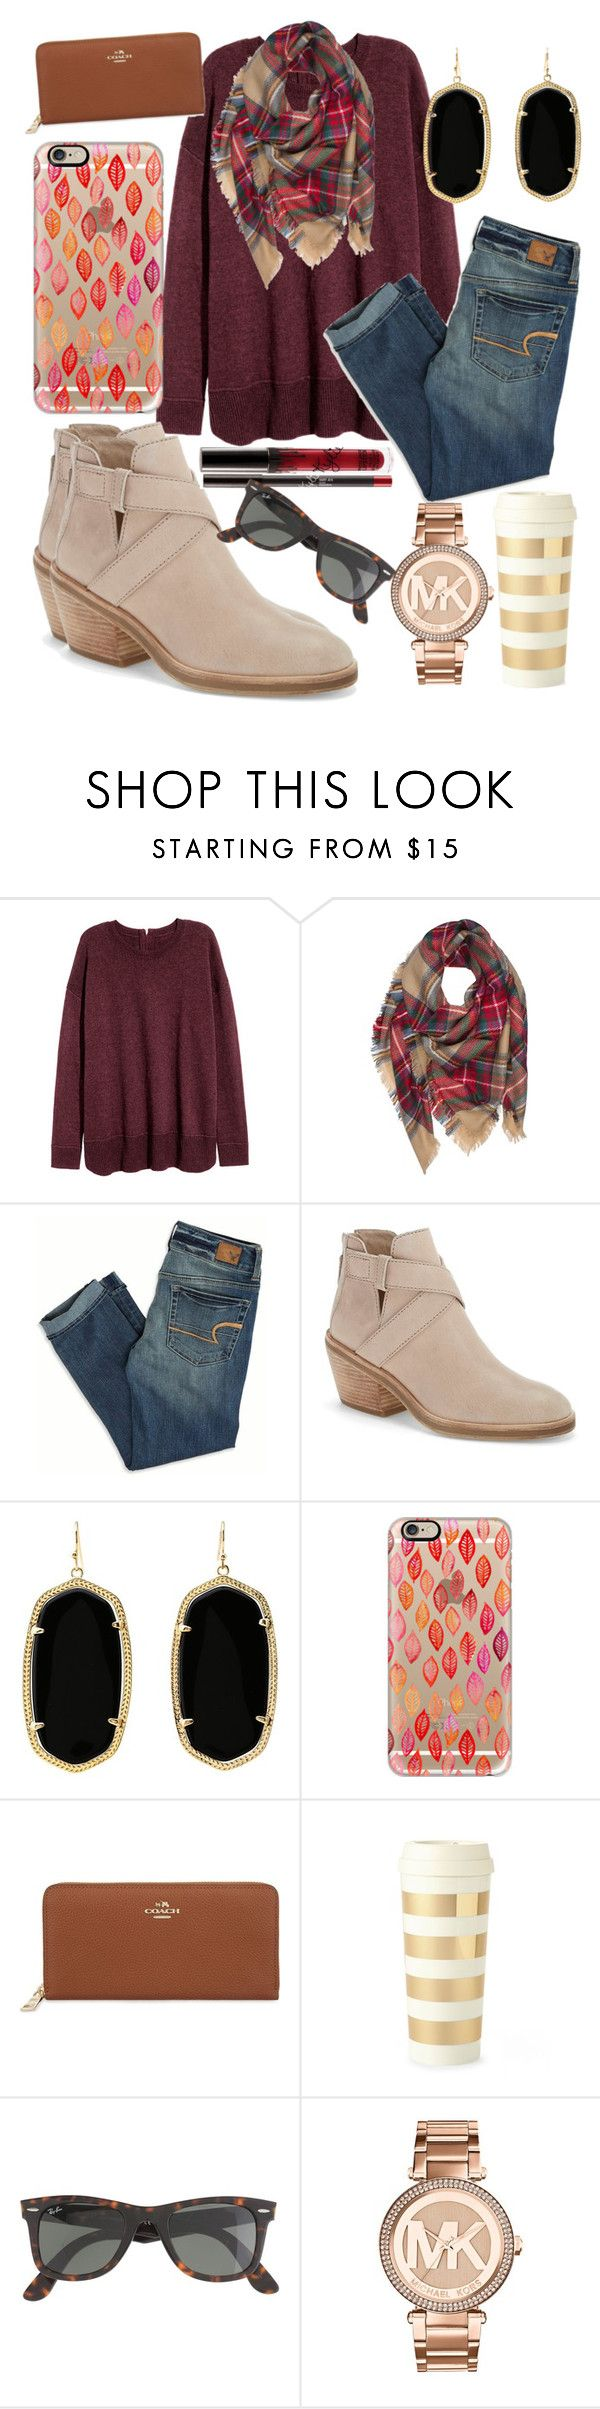 """""""Fall """" by jadenriley21 ❤ liked on Polyvore featuring American Eagle Outfitters, Eileen Fisher, Kendra Scott, Casetify, Coach, Kate Spade, J.Crew and MICHAEL Michael Kors"""